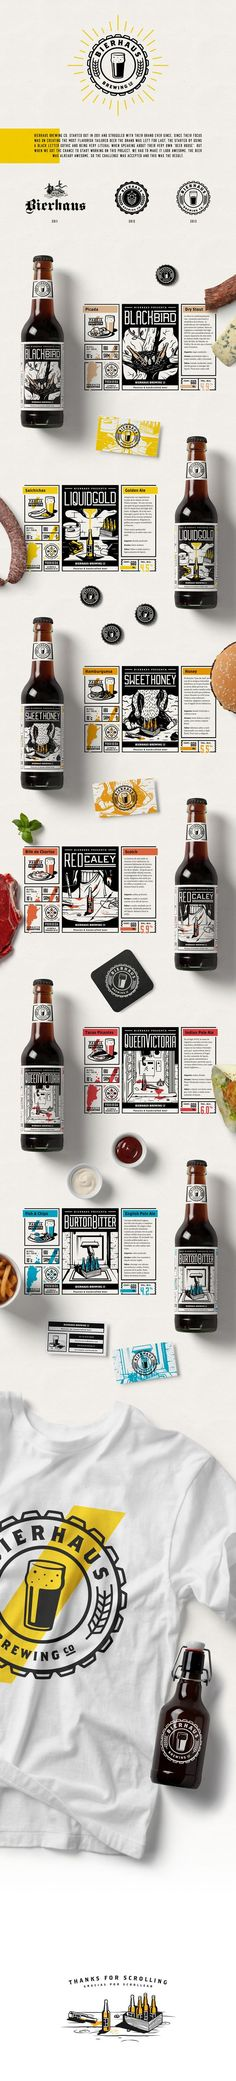 Bierhaus Packaging by Gustavo Zambelli | Fivestar Branding – Design and Branding Agency & Inspiration Gallery